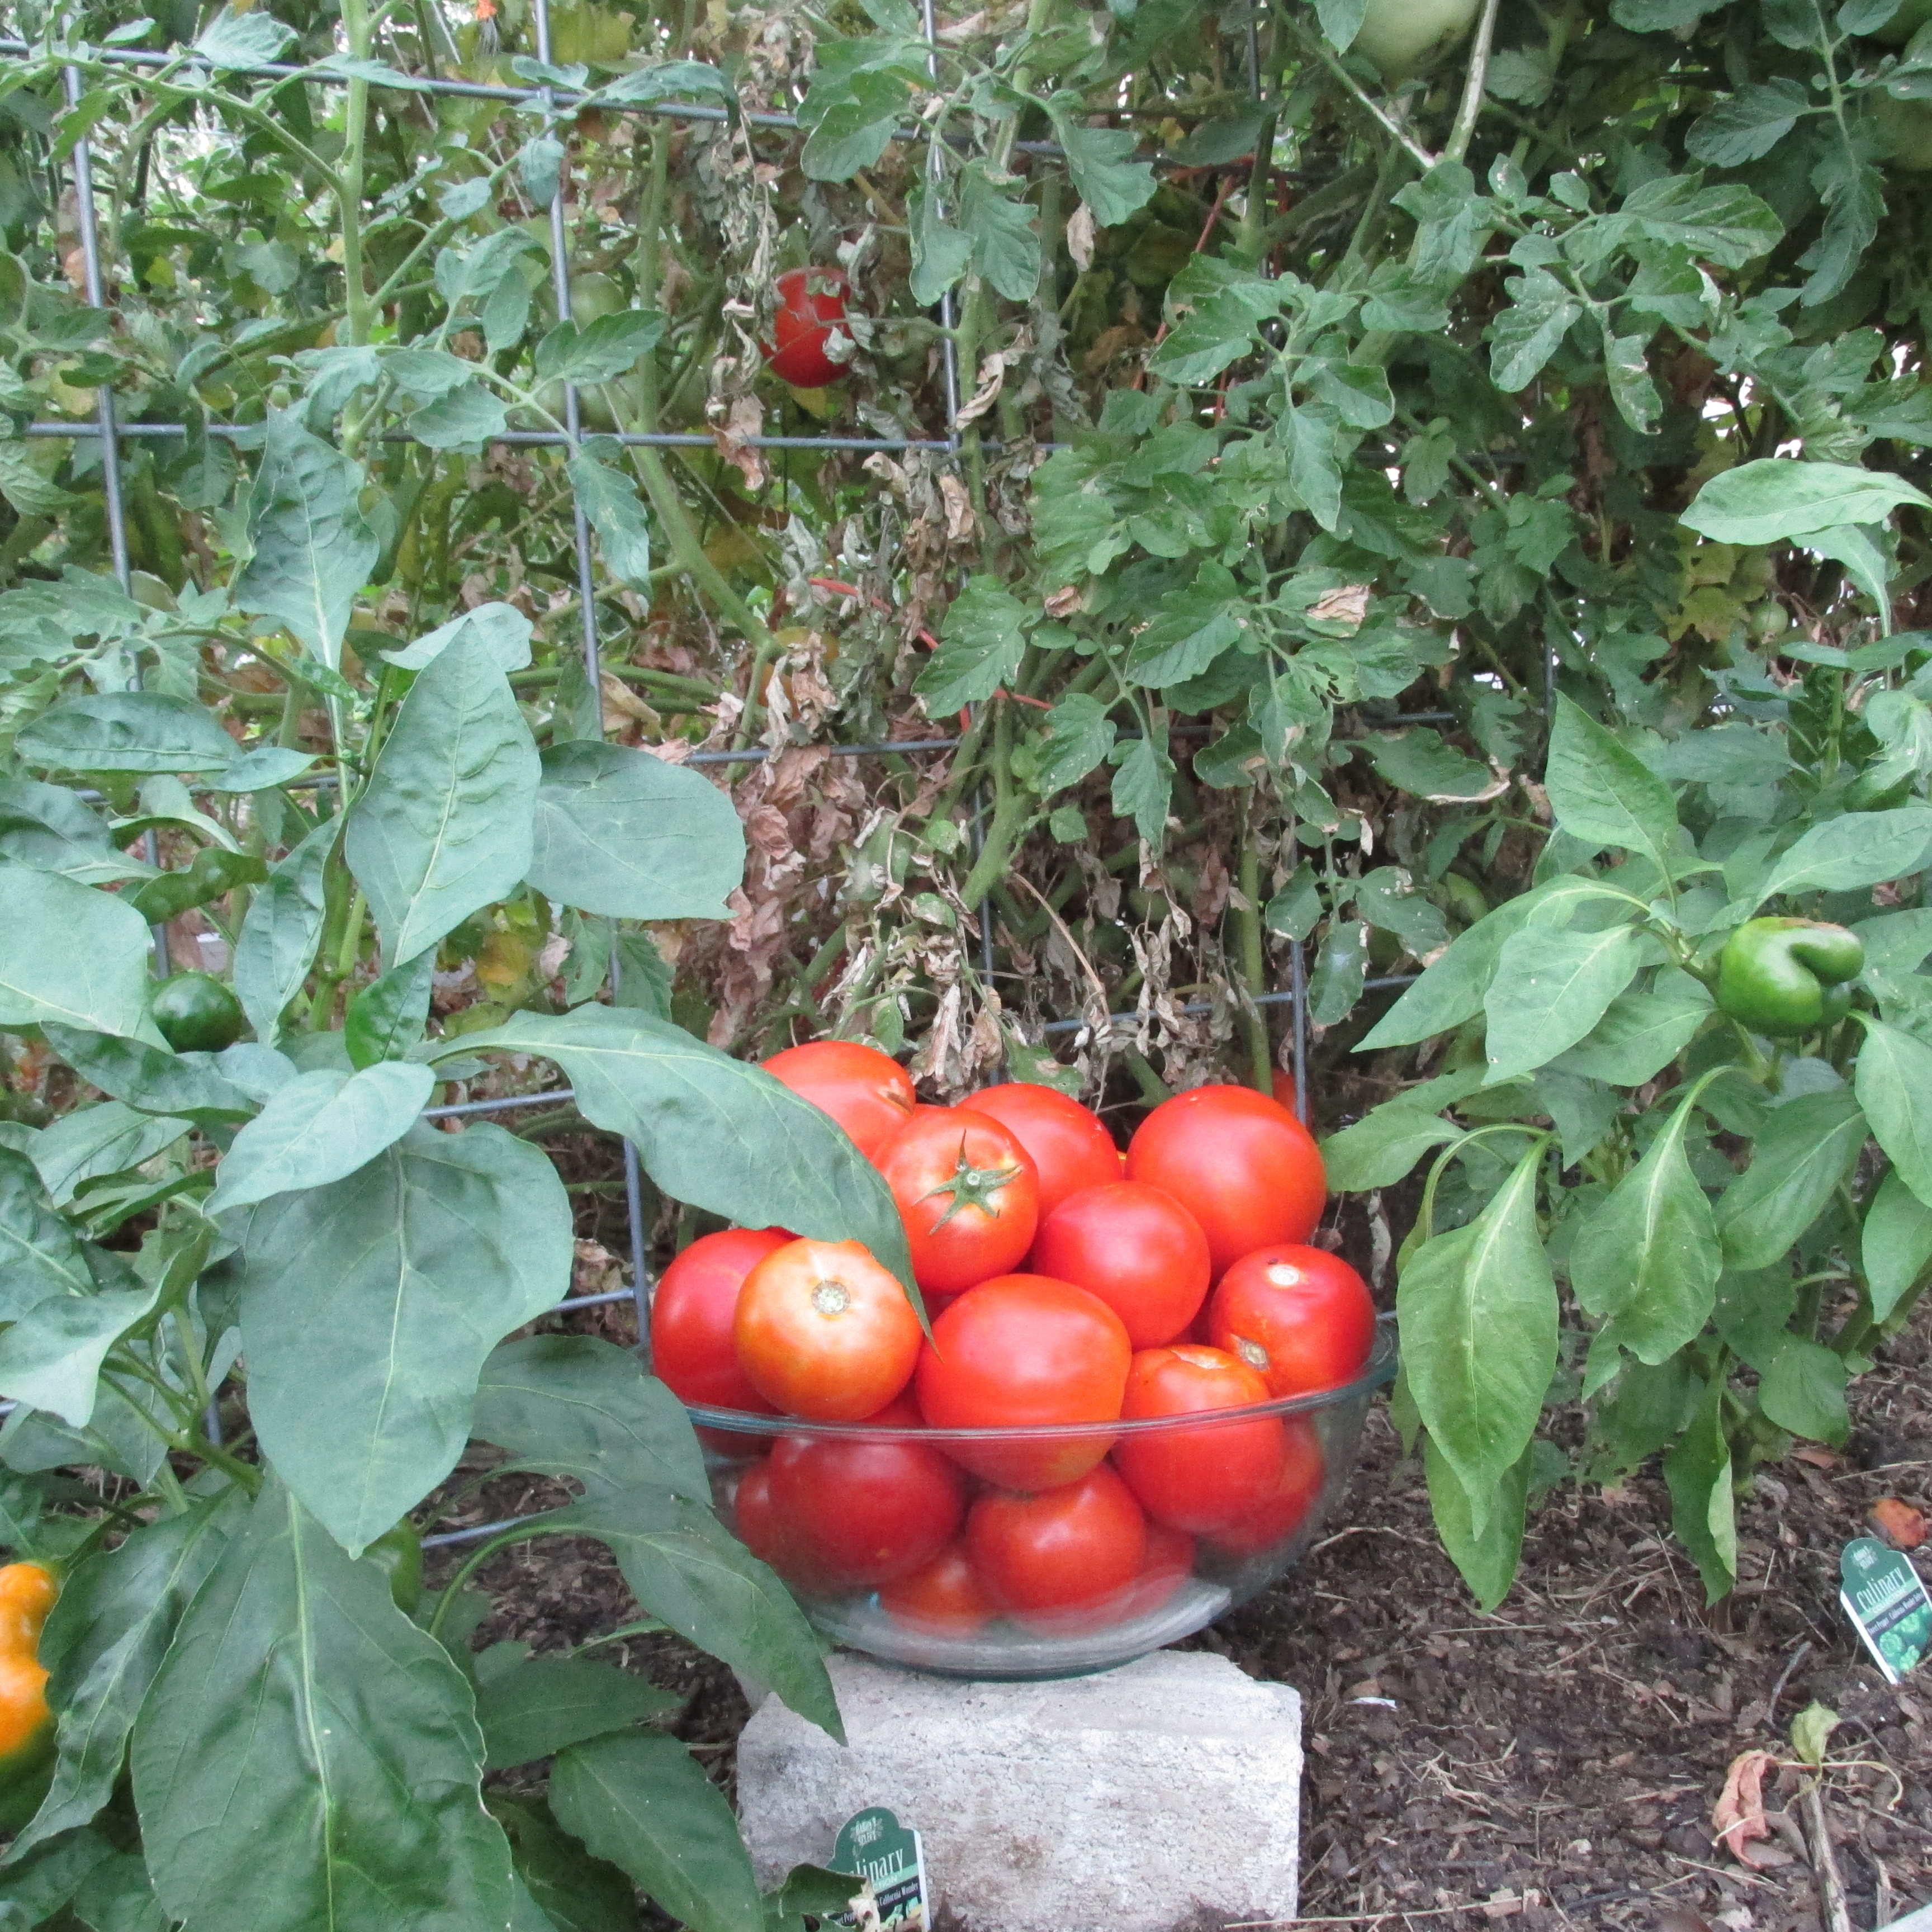 The Jewels of the Garden: Tomatoes